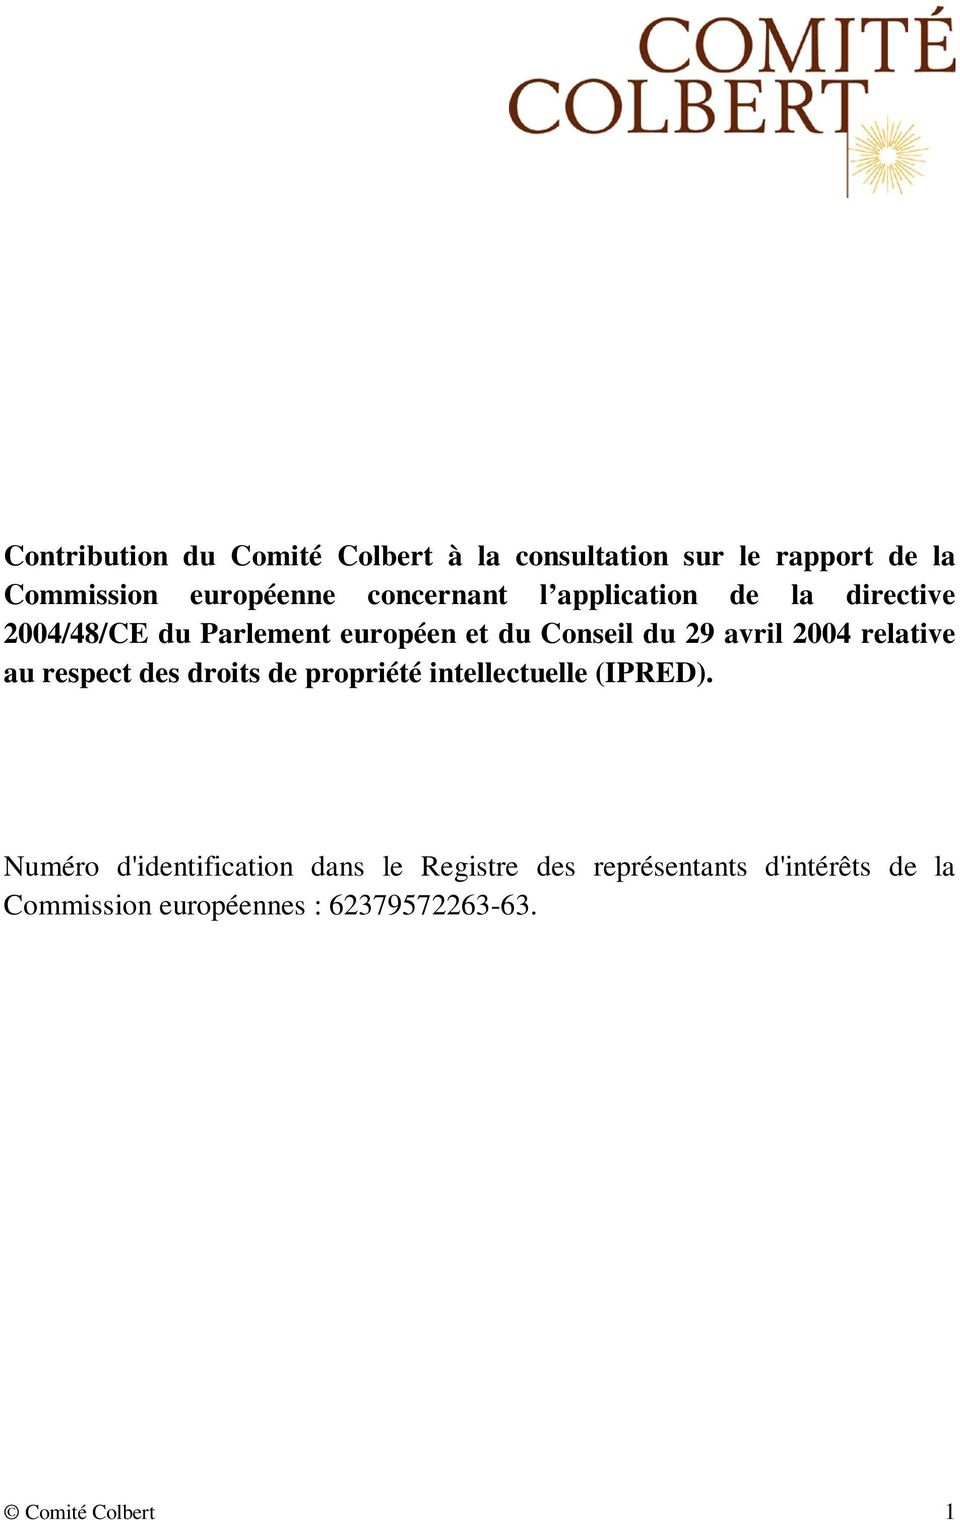 2004 relative au respect des droits de propriété intellectuelle (IPRED).